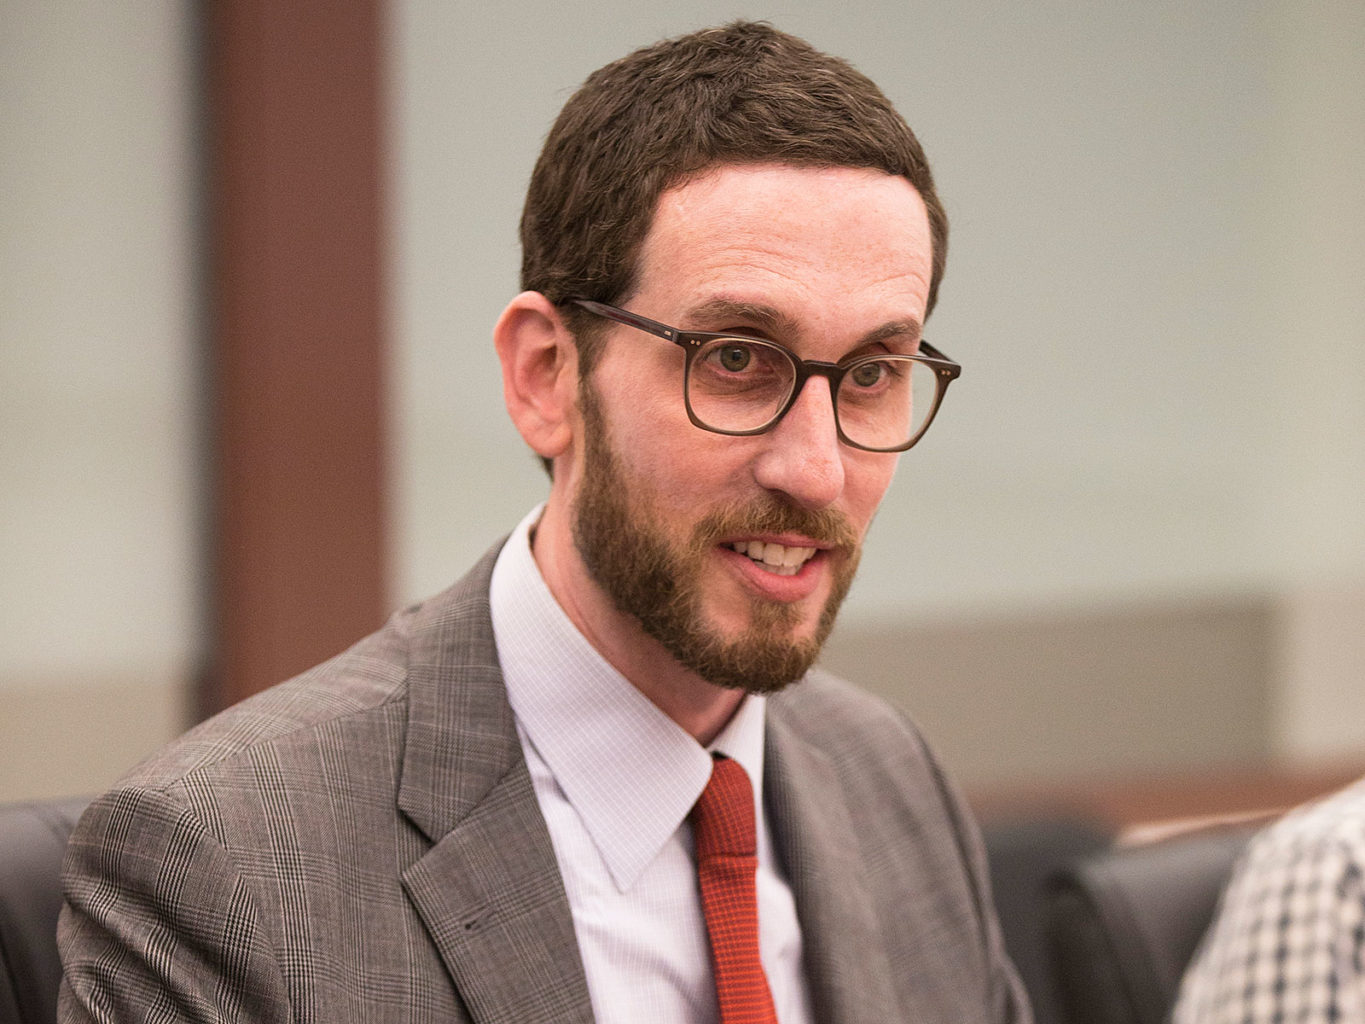 State sen. Scott Wiener has proposed SB 287, a bill that would change zoning laws throughout the state to allow for more housing to be build next public transit.